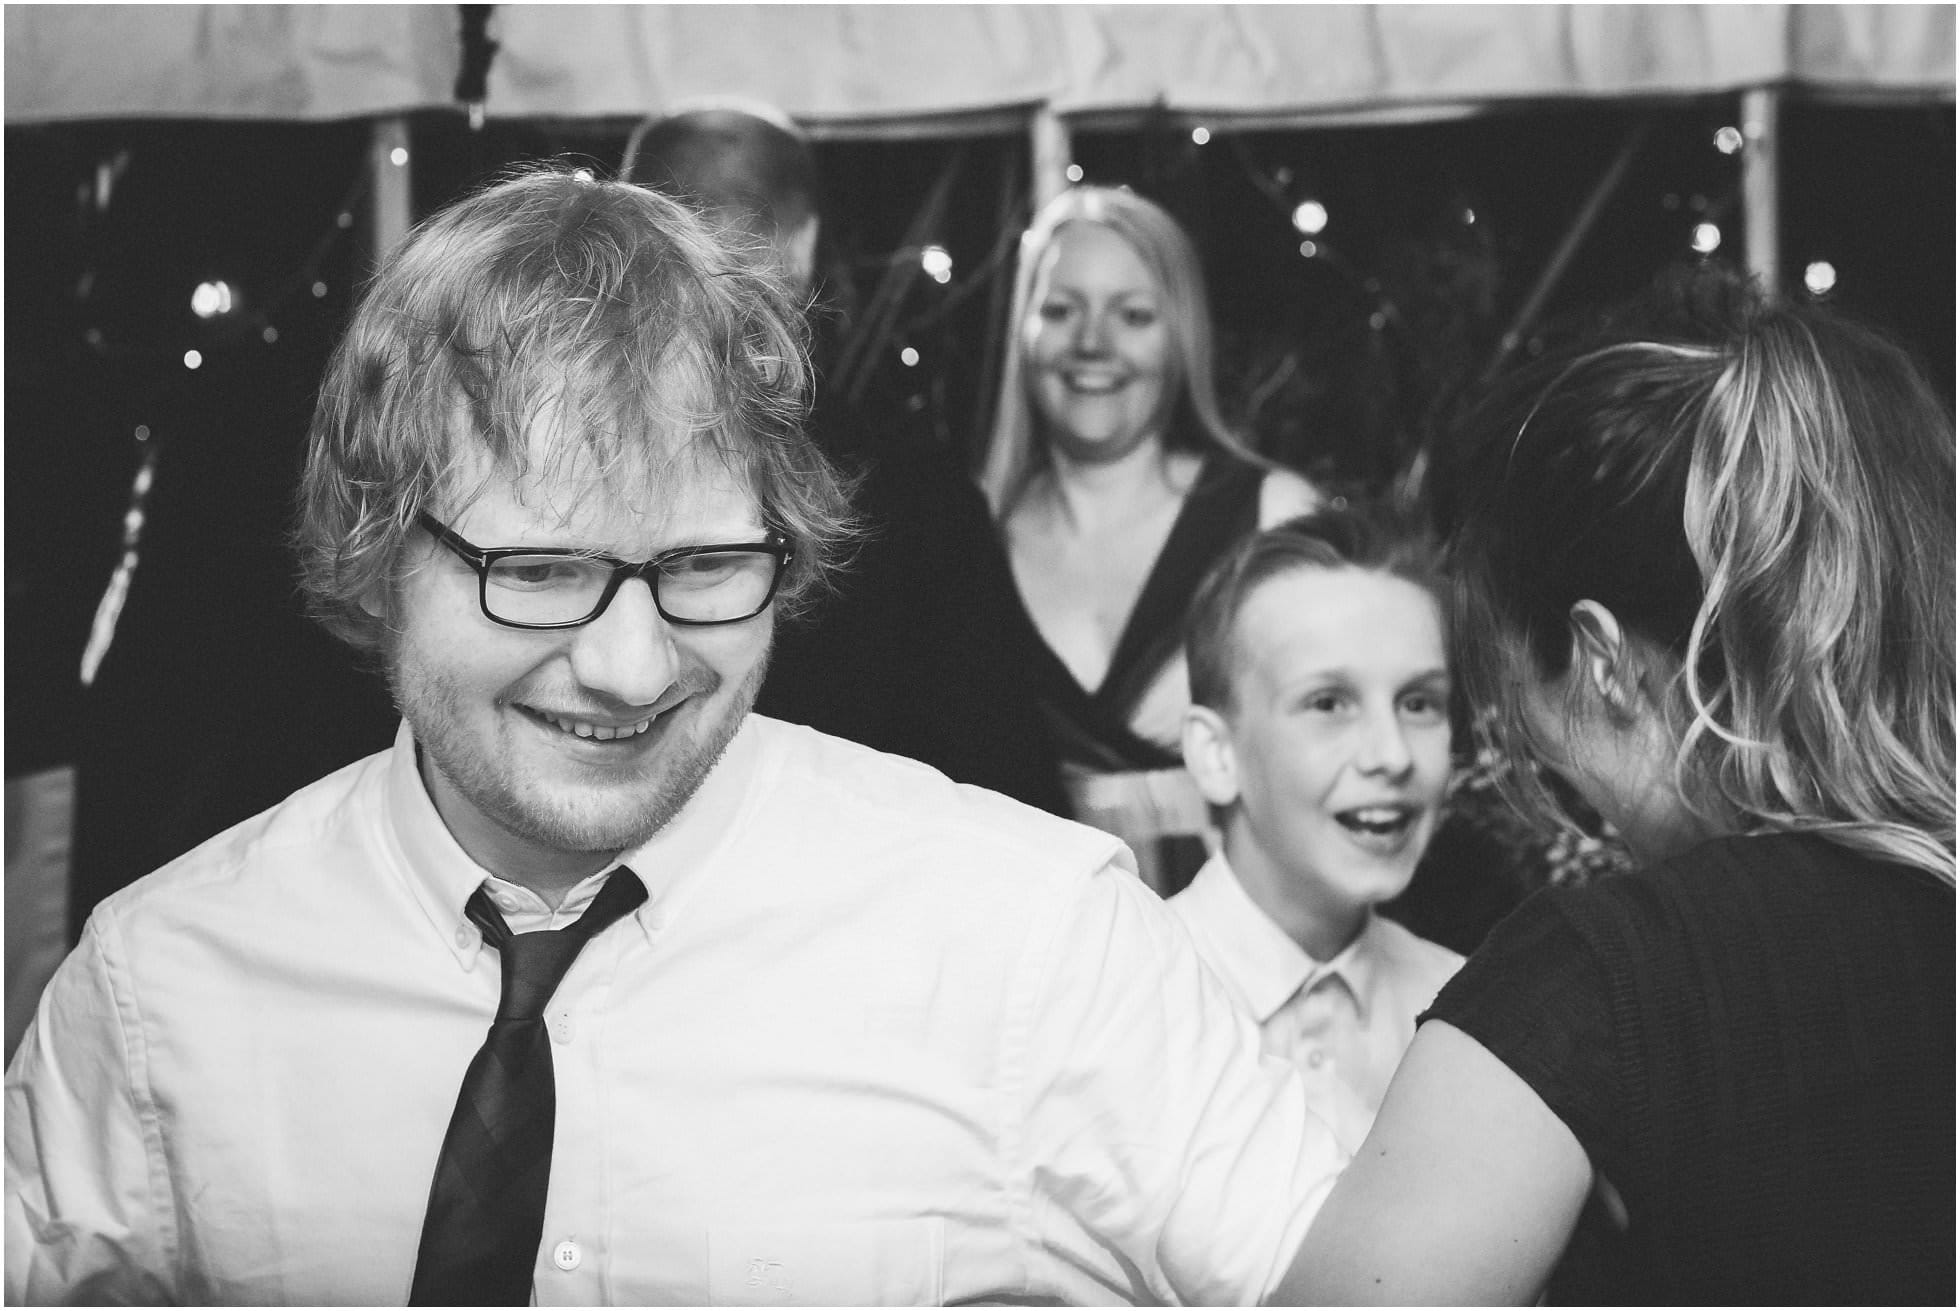 Ed Sheeran dancing the ceilidh at a North Yorkshire wedding